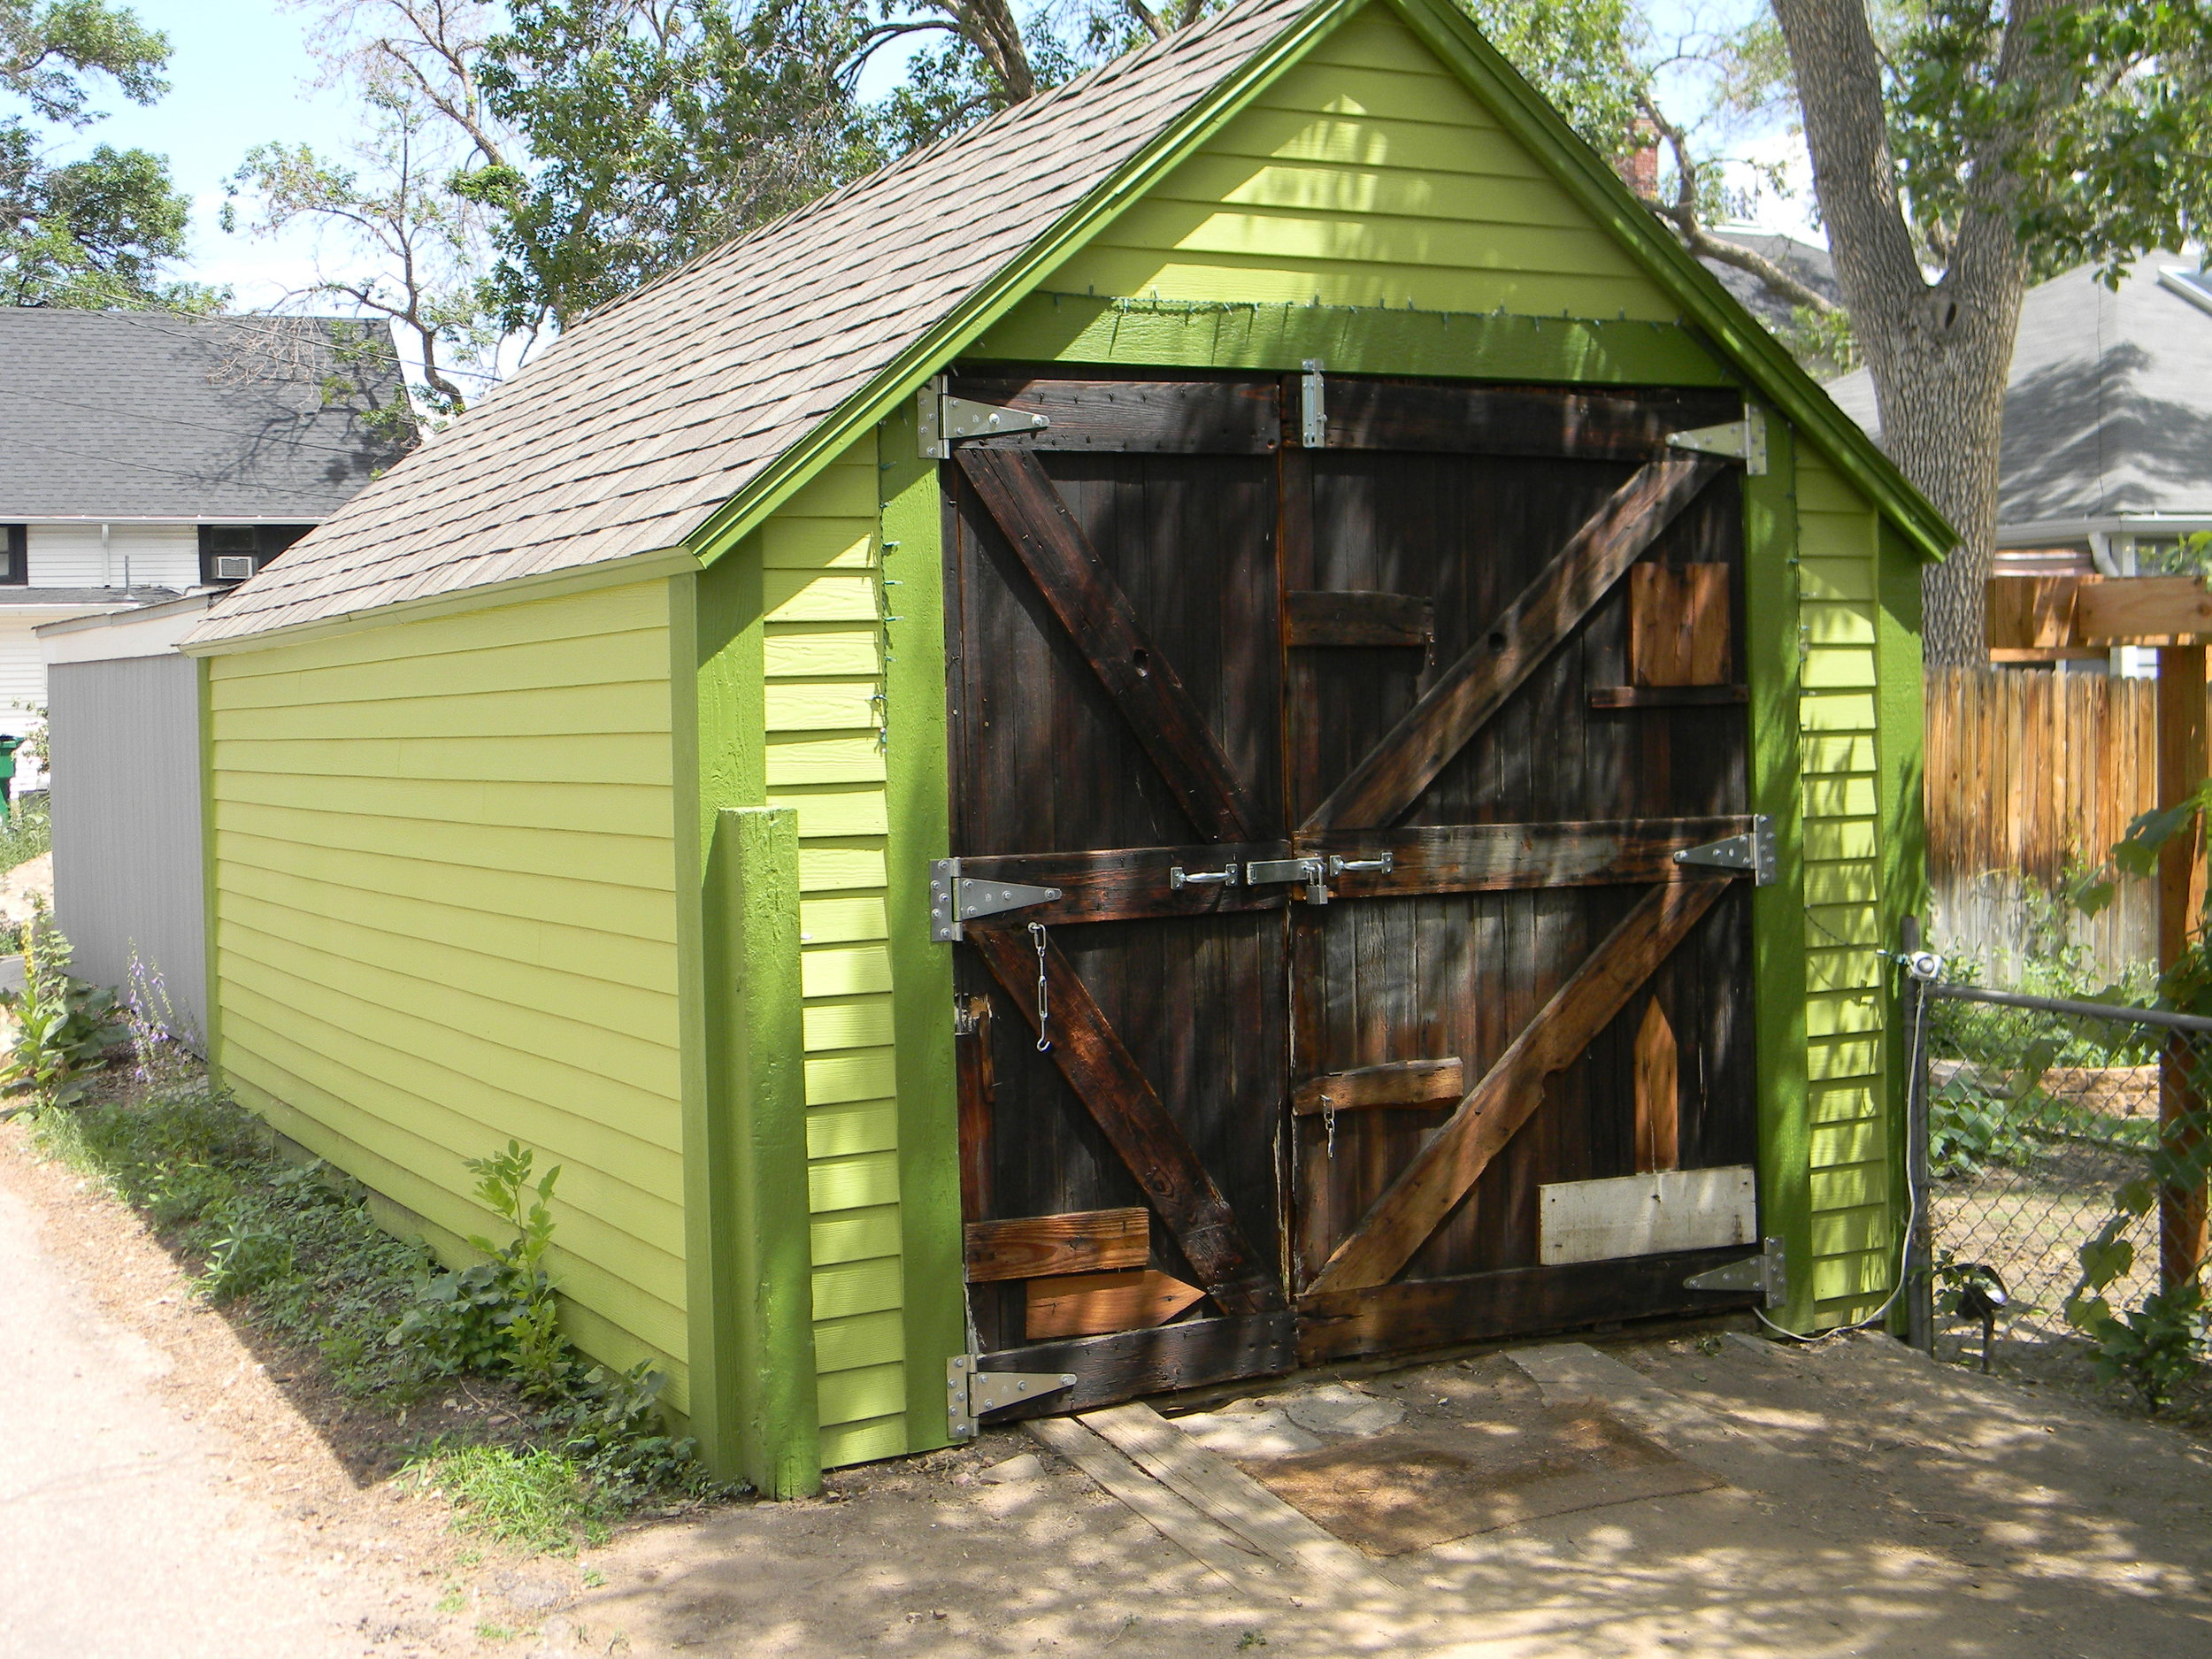 painted-lady-shed-after.jpg